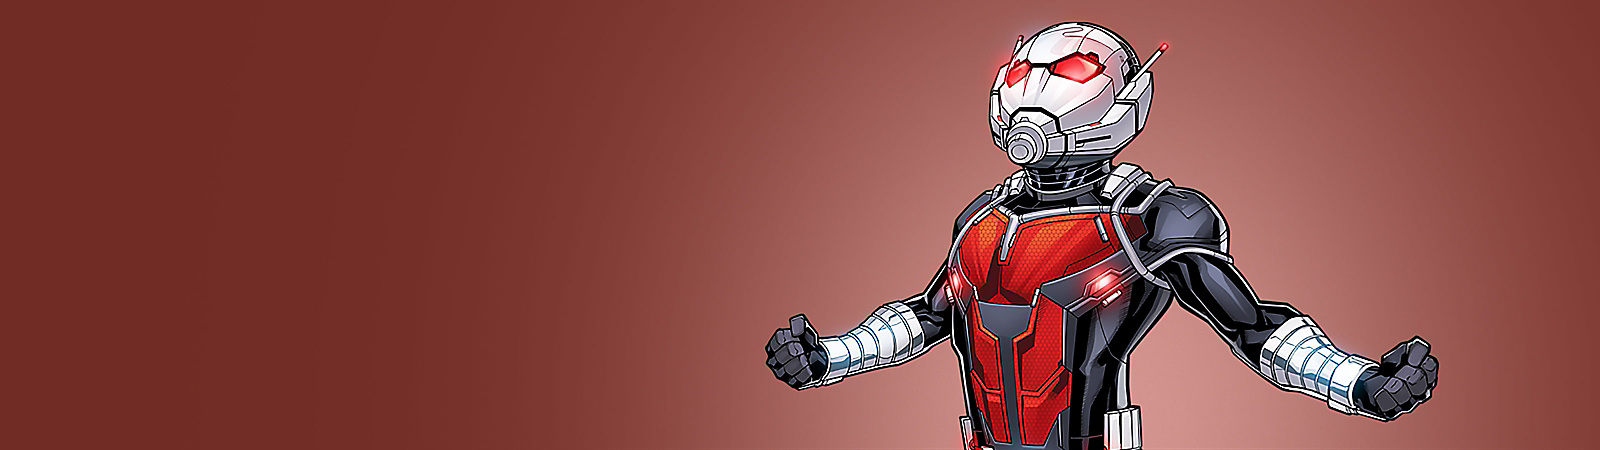 Background image of Ant-Man